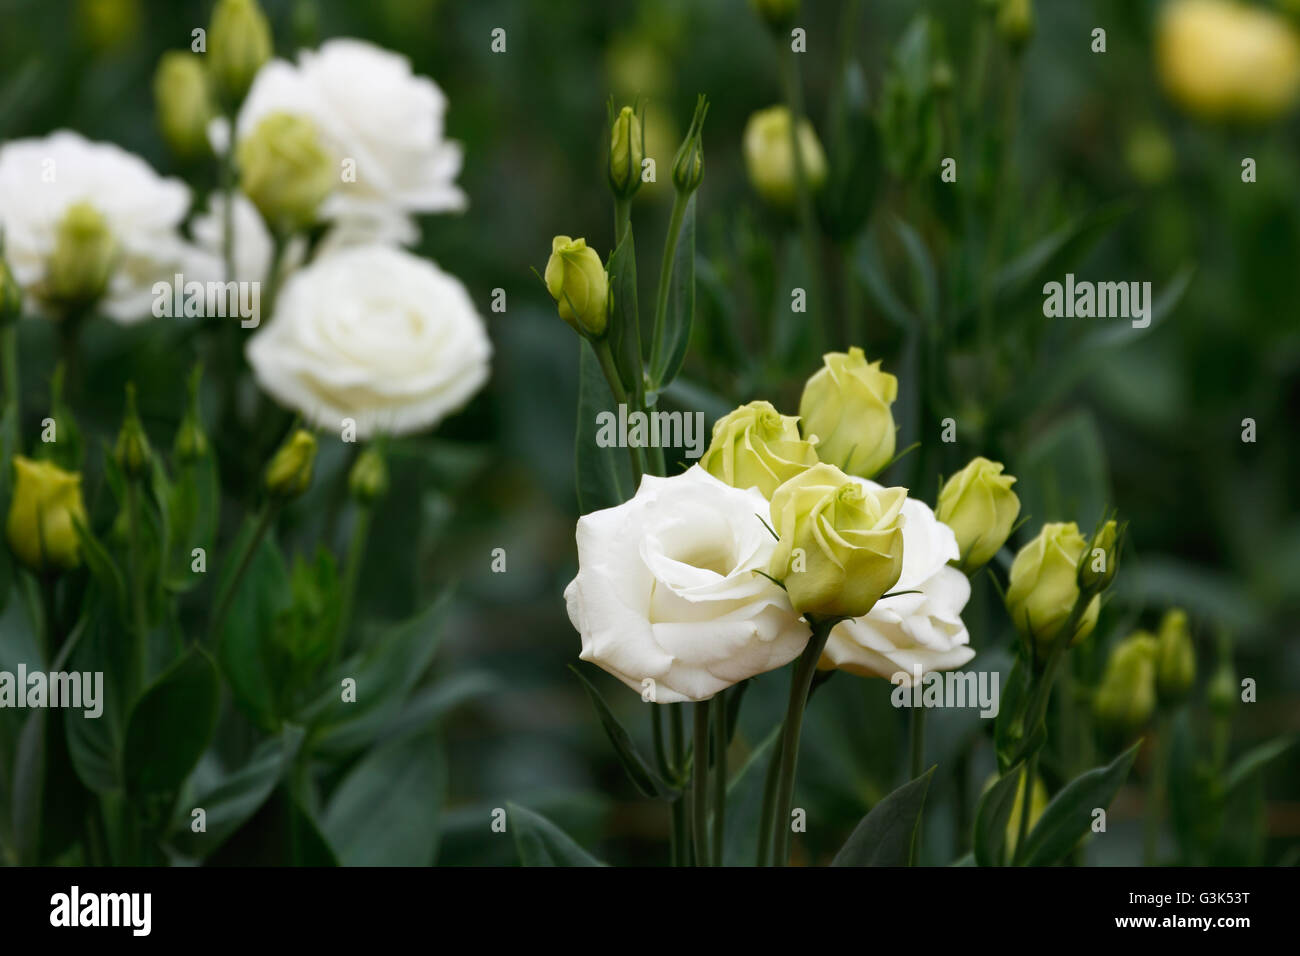 Lisianthus / Eustoma flowers (White rose) the plant that look like a white rose but without thorns - Stock Image